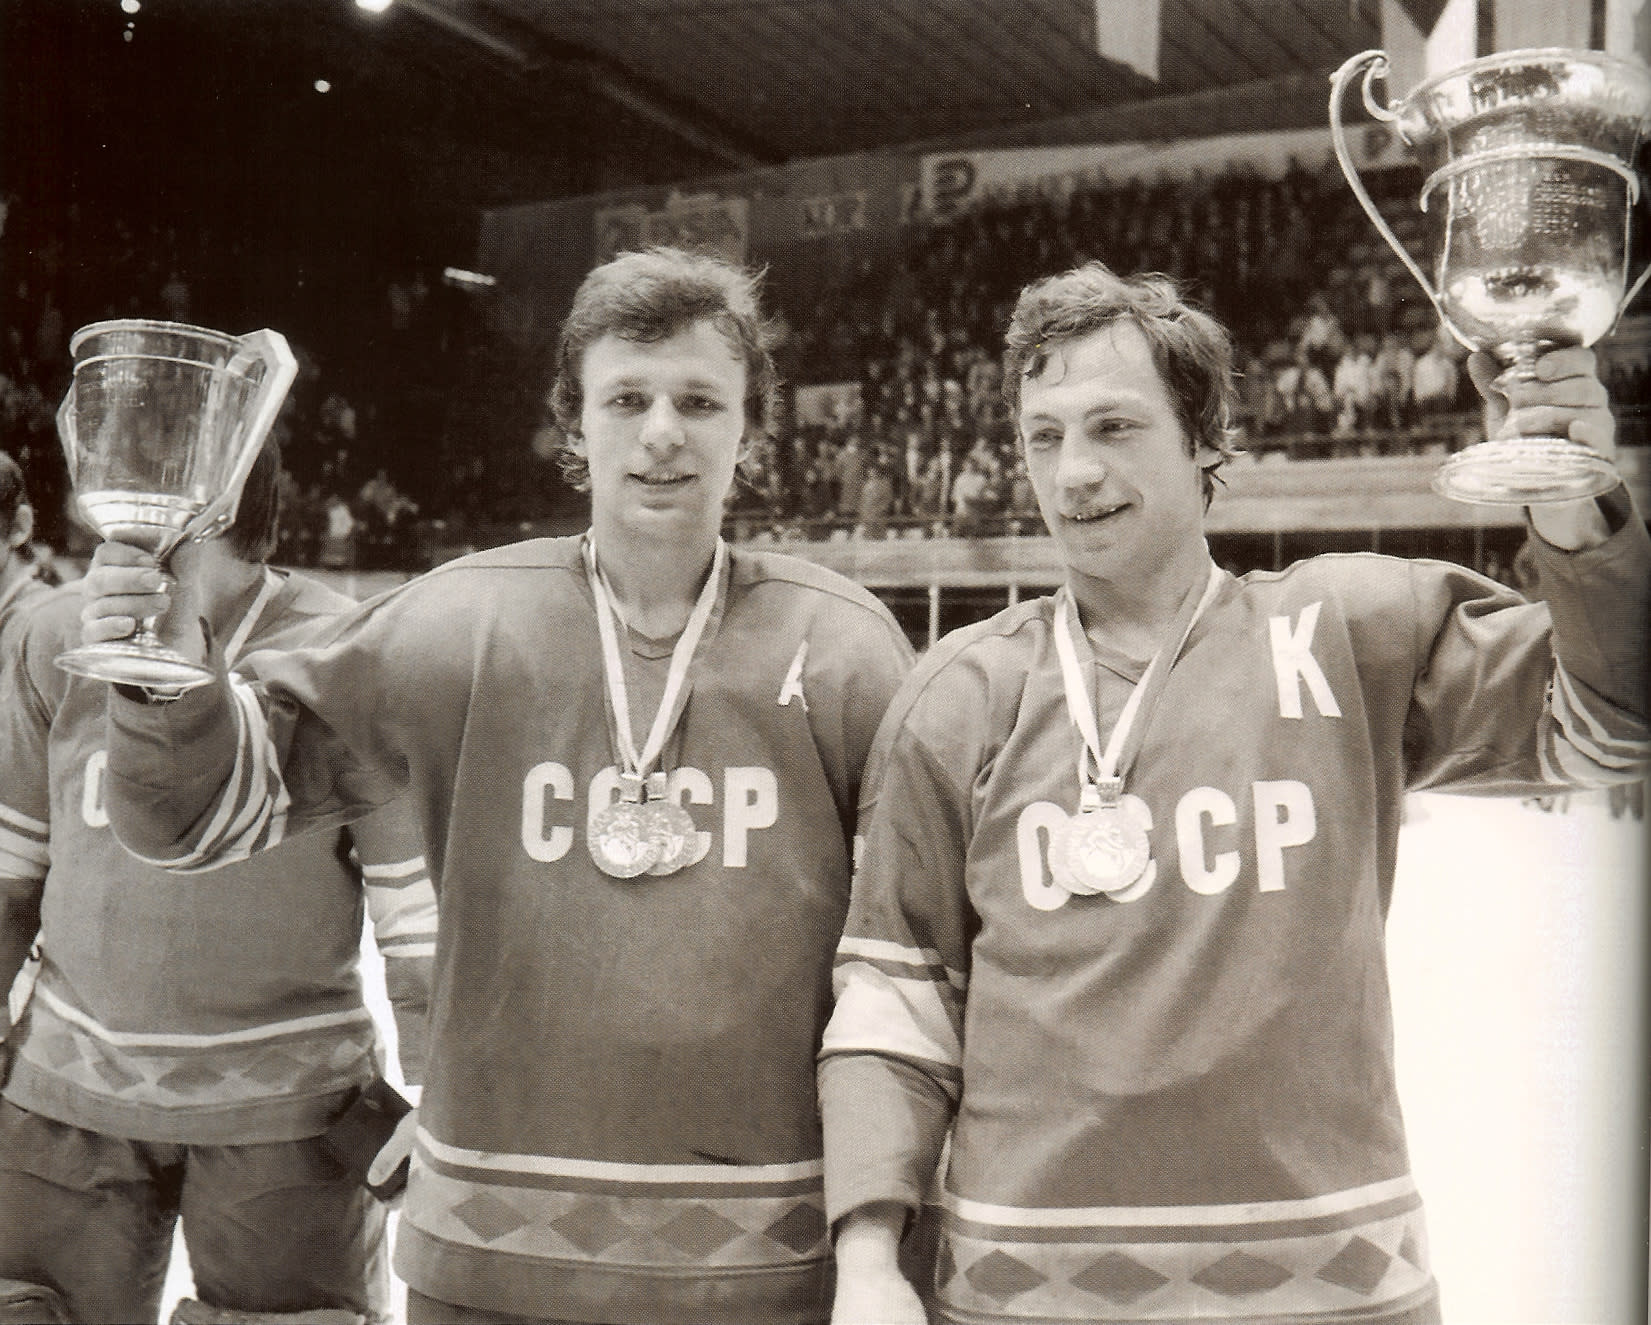 Documentary tells gripping story of Red Army hockey team